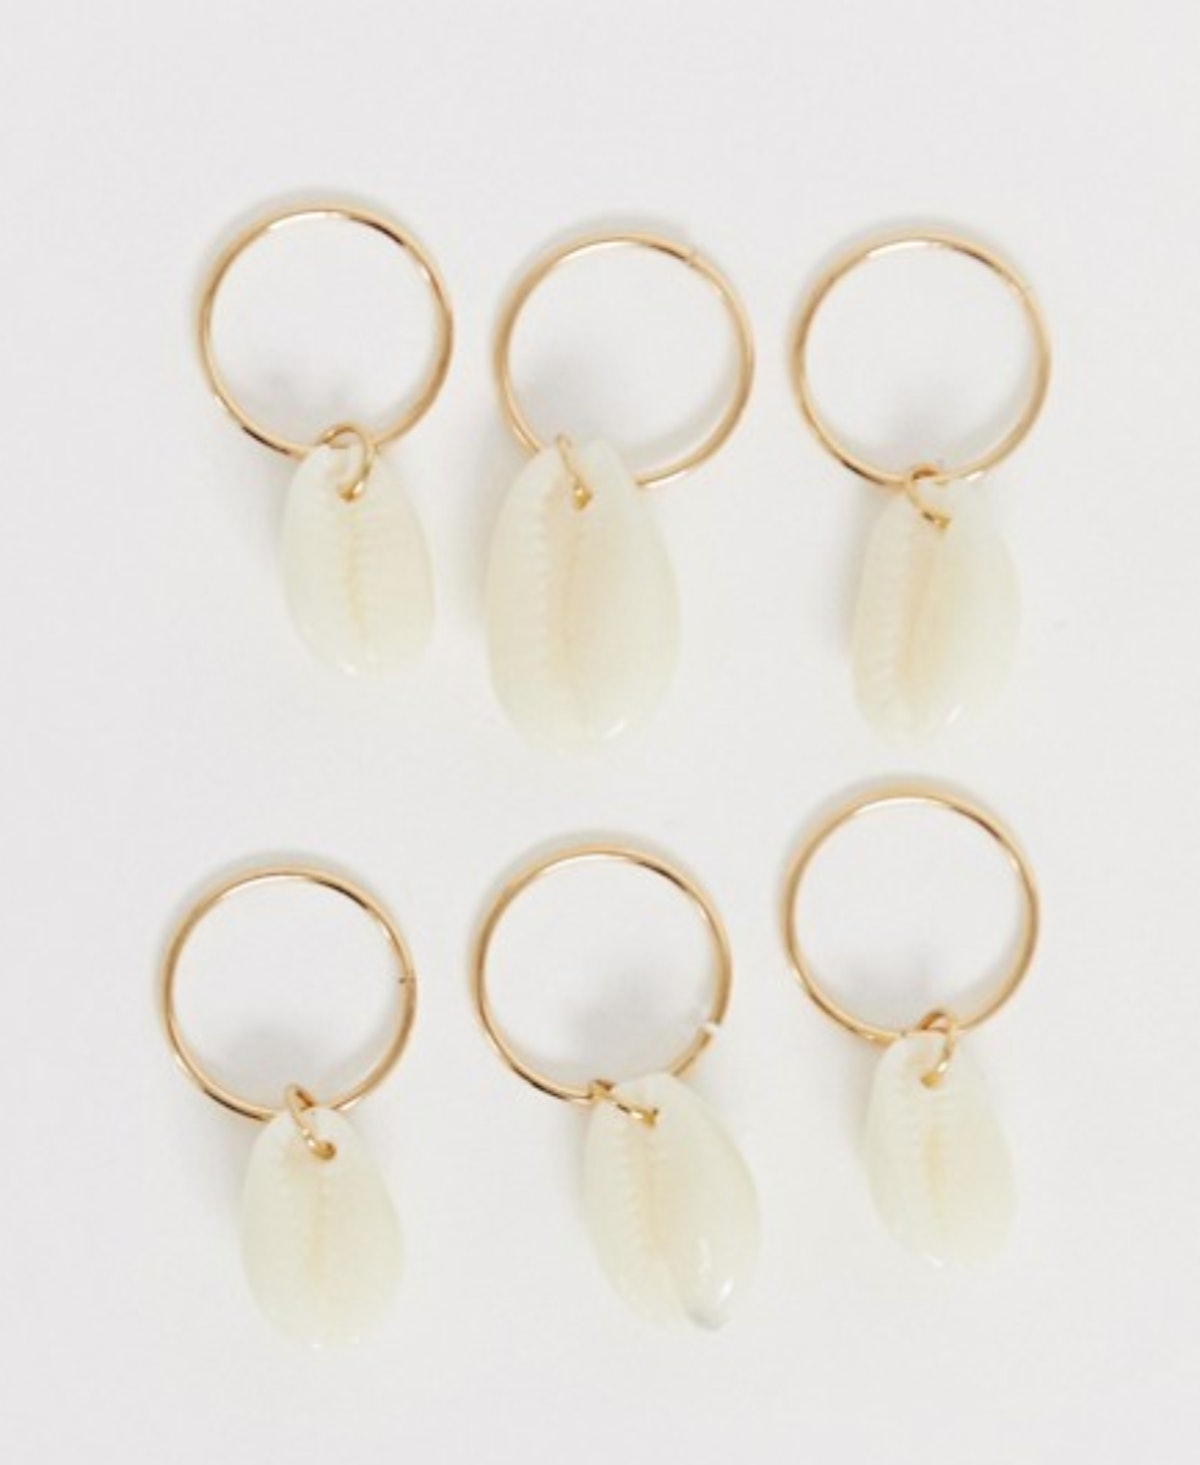 ASOS DESIGN Pack of 6 Hair Rings with Shell Charms in Gold Tone